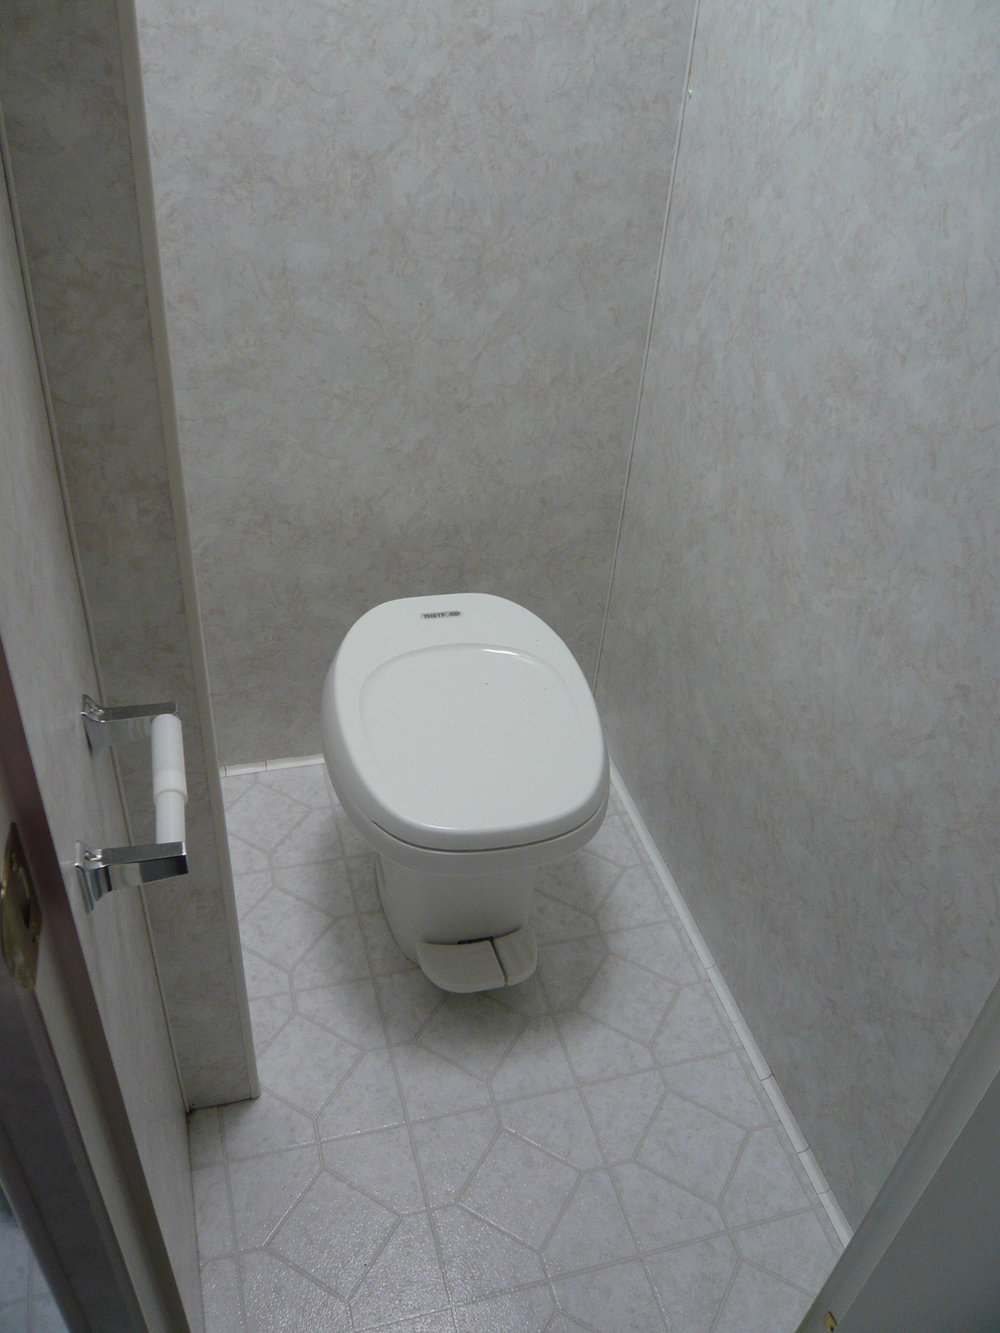 This was how the toilet room originally looked. It sits to the left of the shower, separated by a wall.